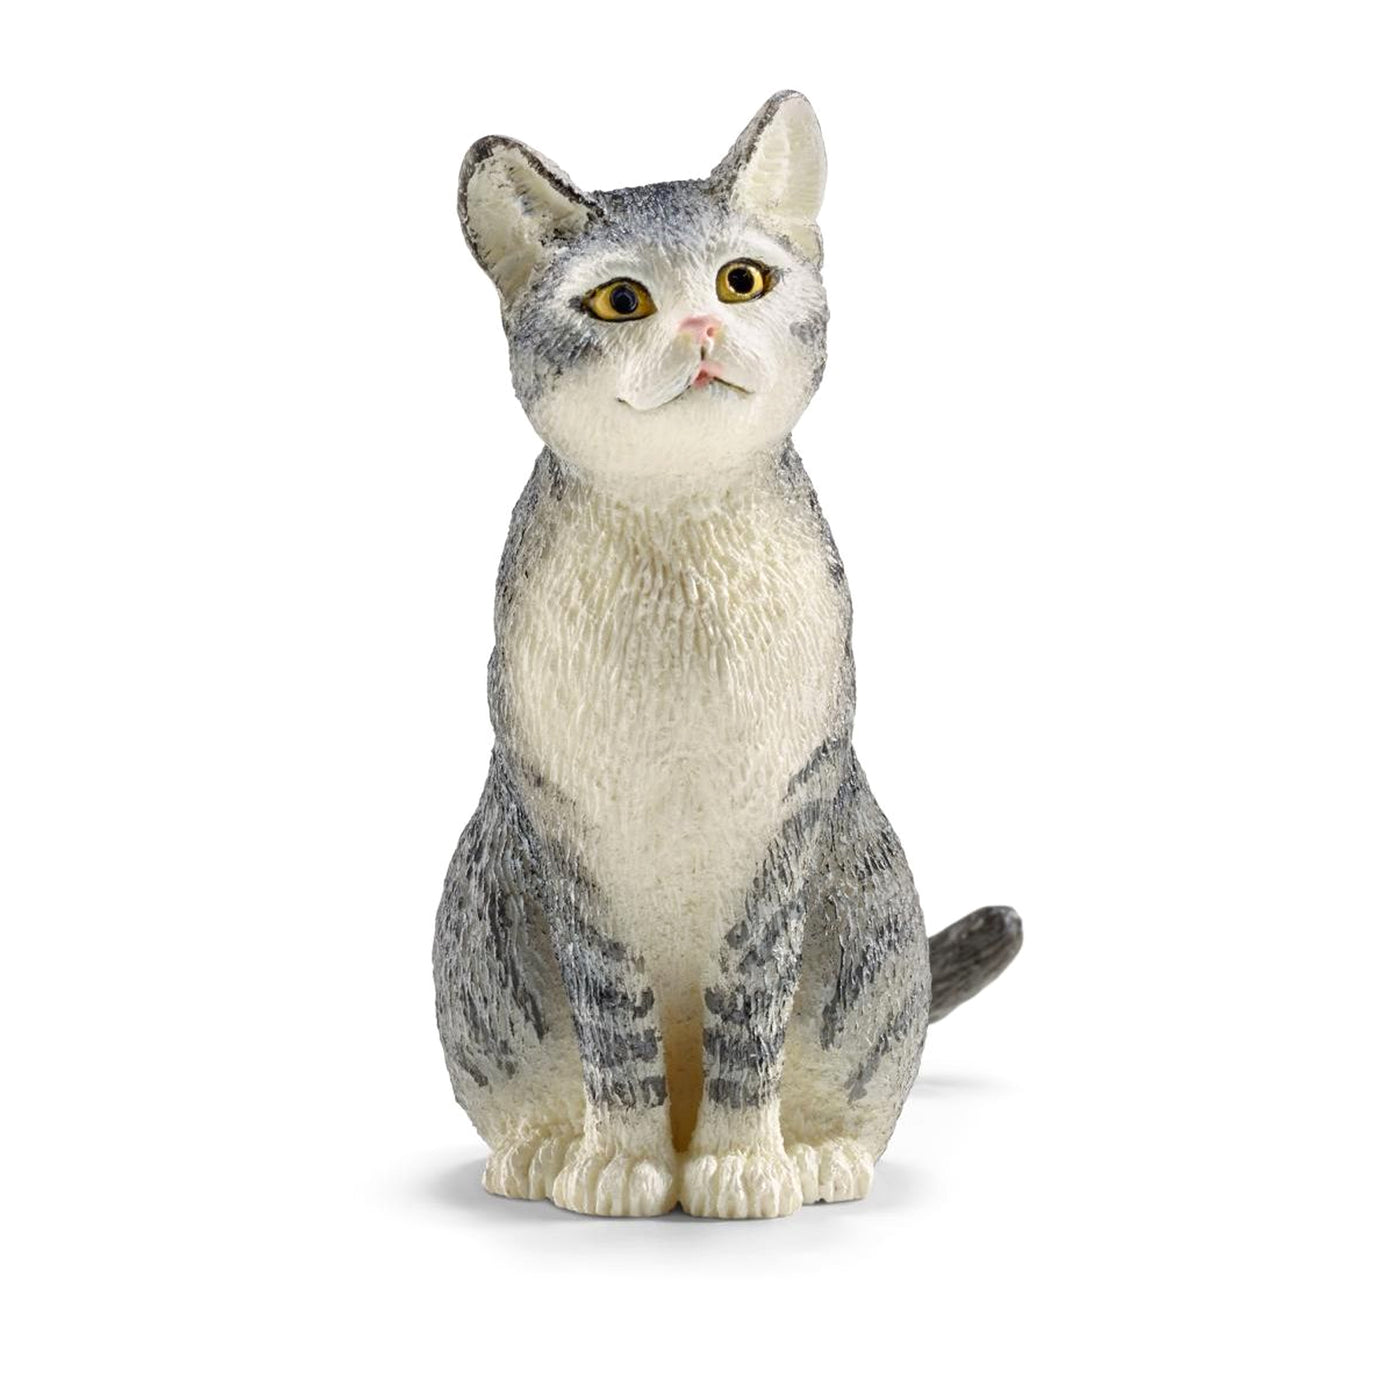 Schleich Farm World Sitting Grey Cat Toy Figurine